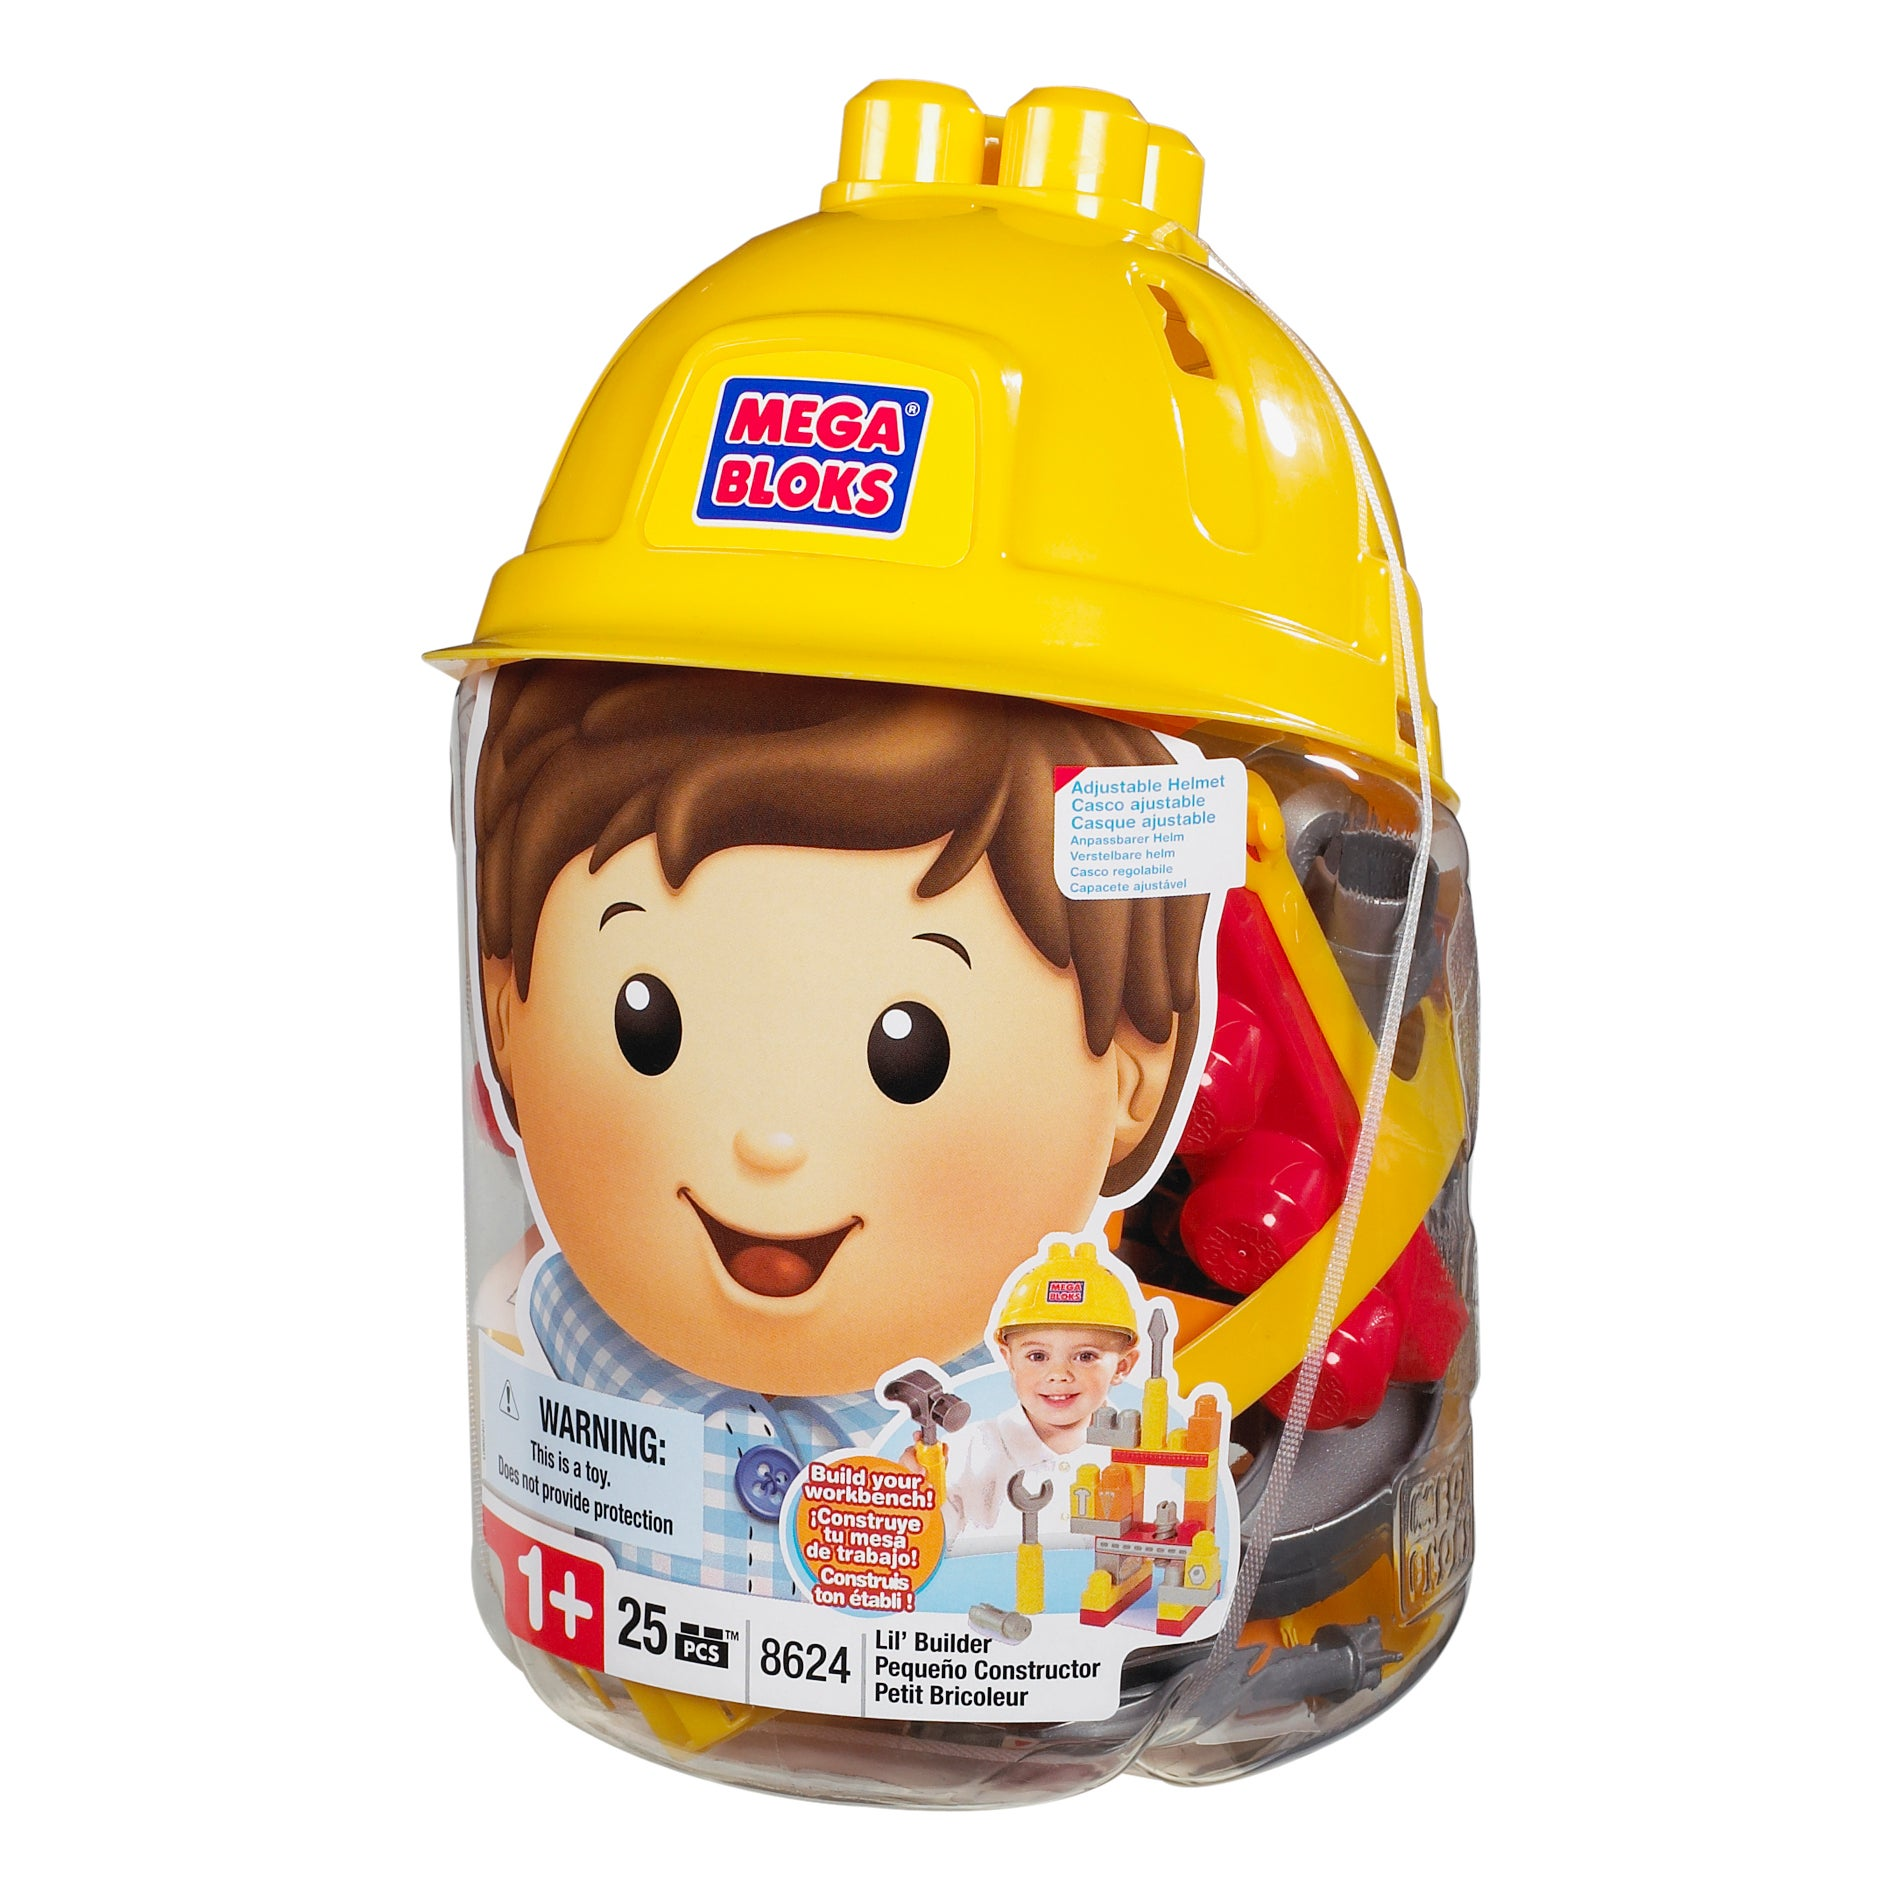 Mega Bloks Lil' Builder Hat Bucket Play Set